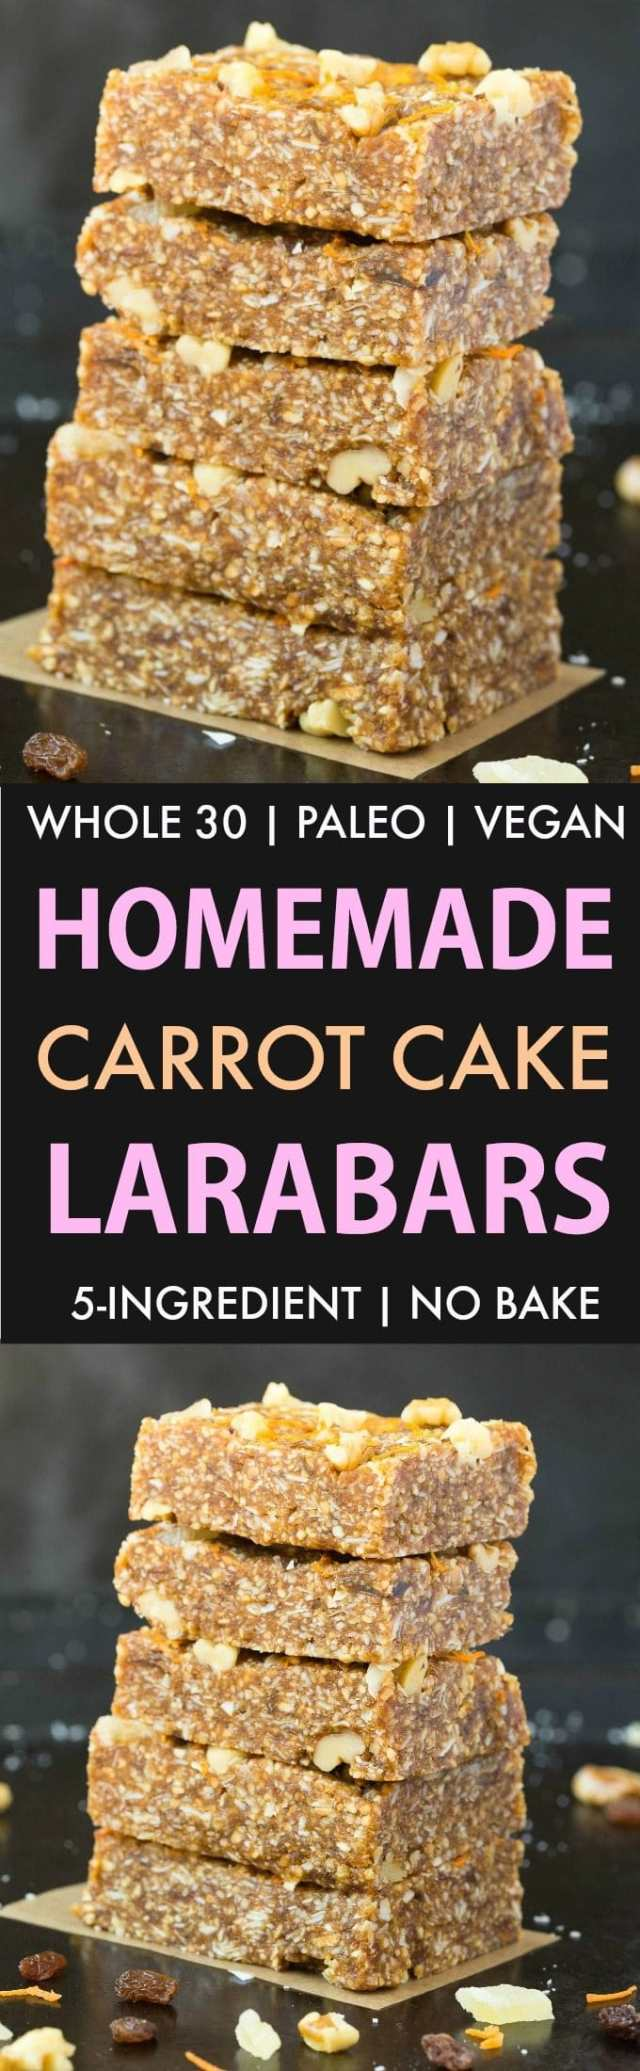 Homemade Carrot Cake Larabars (Whole30, Paleo, Vegan, Gluten Free) These homemade Larabars are cheaper than store-bought and take minutes to whip up! Made with simple Ingredients and whole30 approved! (vegan, whole 30, dairy free, refined sugar free)- #whole30 #vegan #whole30approved | Recipe on thebigmansworld.com